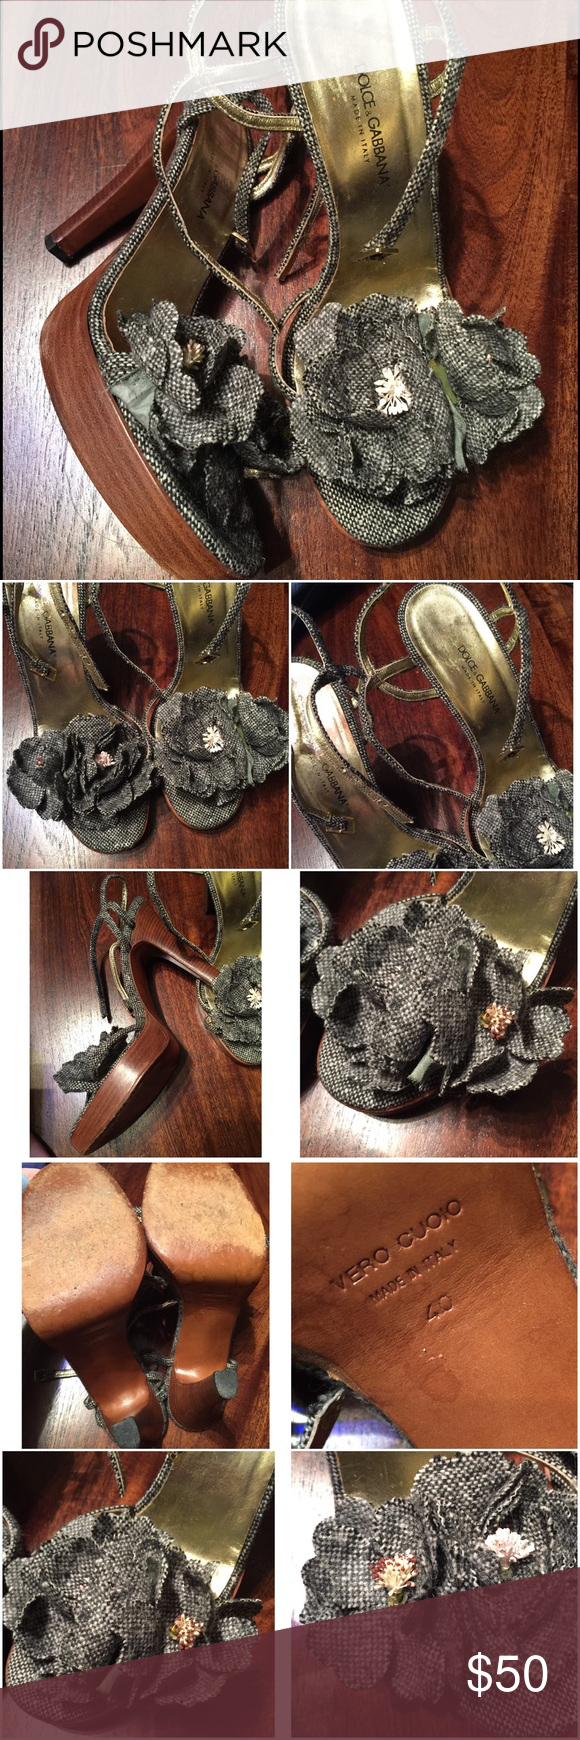 "Dolce and Gabbana jeans heeled shoes sandals Dolce and Gabbana sandals heeled flowers , 5"" heel with 1 "" platform . Worn a few times. Good condition. Mark size 40, fits like 9-9.5. Dolce & Gabbana Shoes Heels"